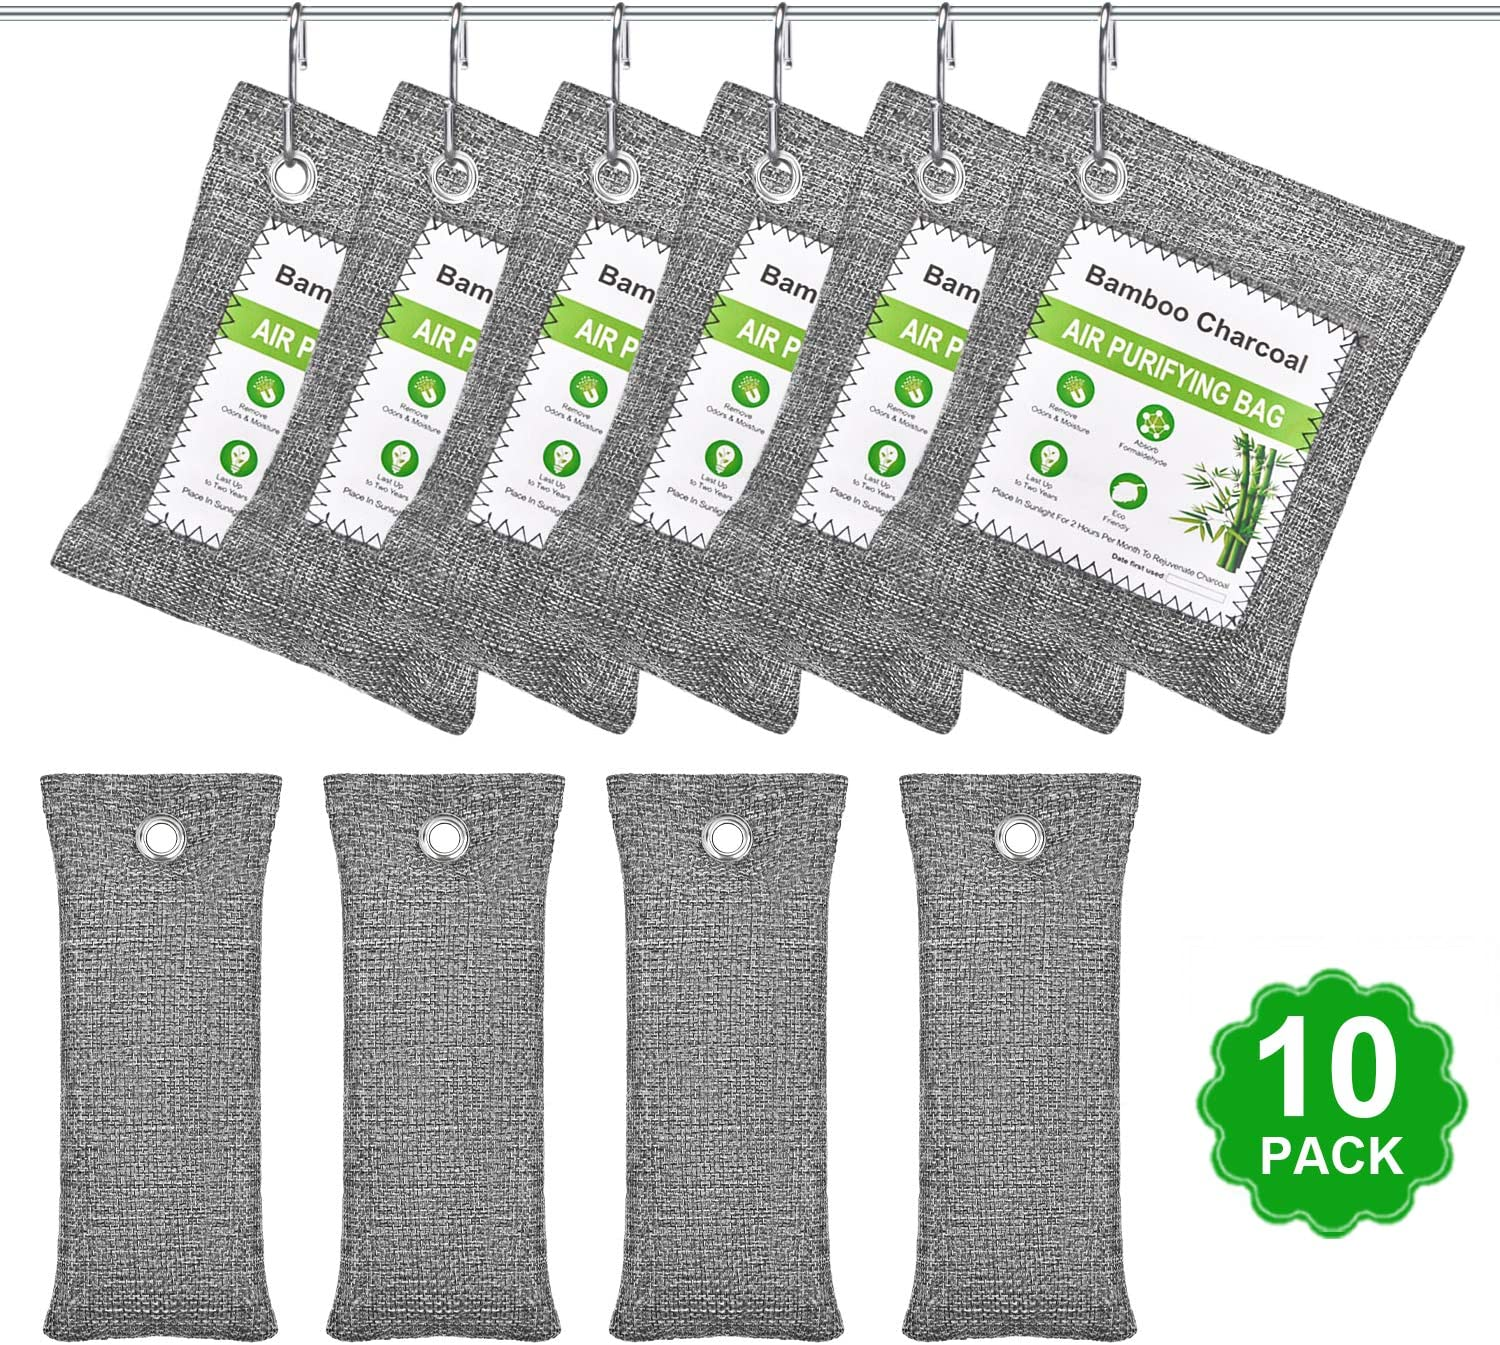 10 Pack Bamboo Charcoal Air Purifying Bag with 6 hooks, Nature Fresh Air Purifier Bags, Activated Charcoal Bags Odor Absorber for Room, Car Pet, Shoes, Gym Bag, Closet